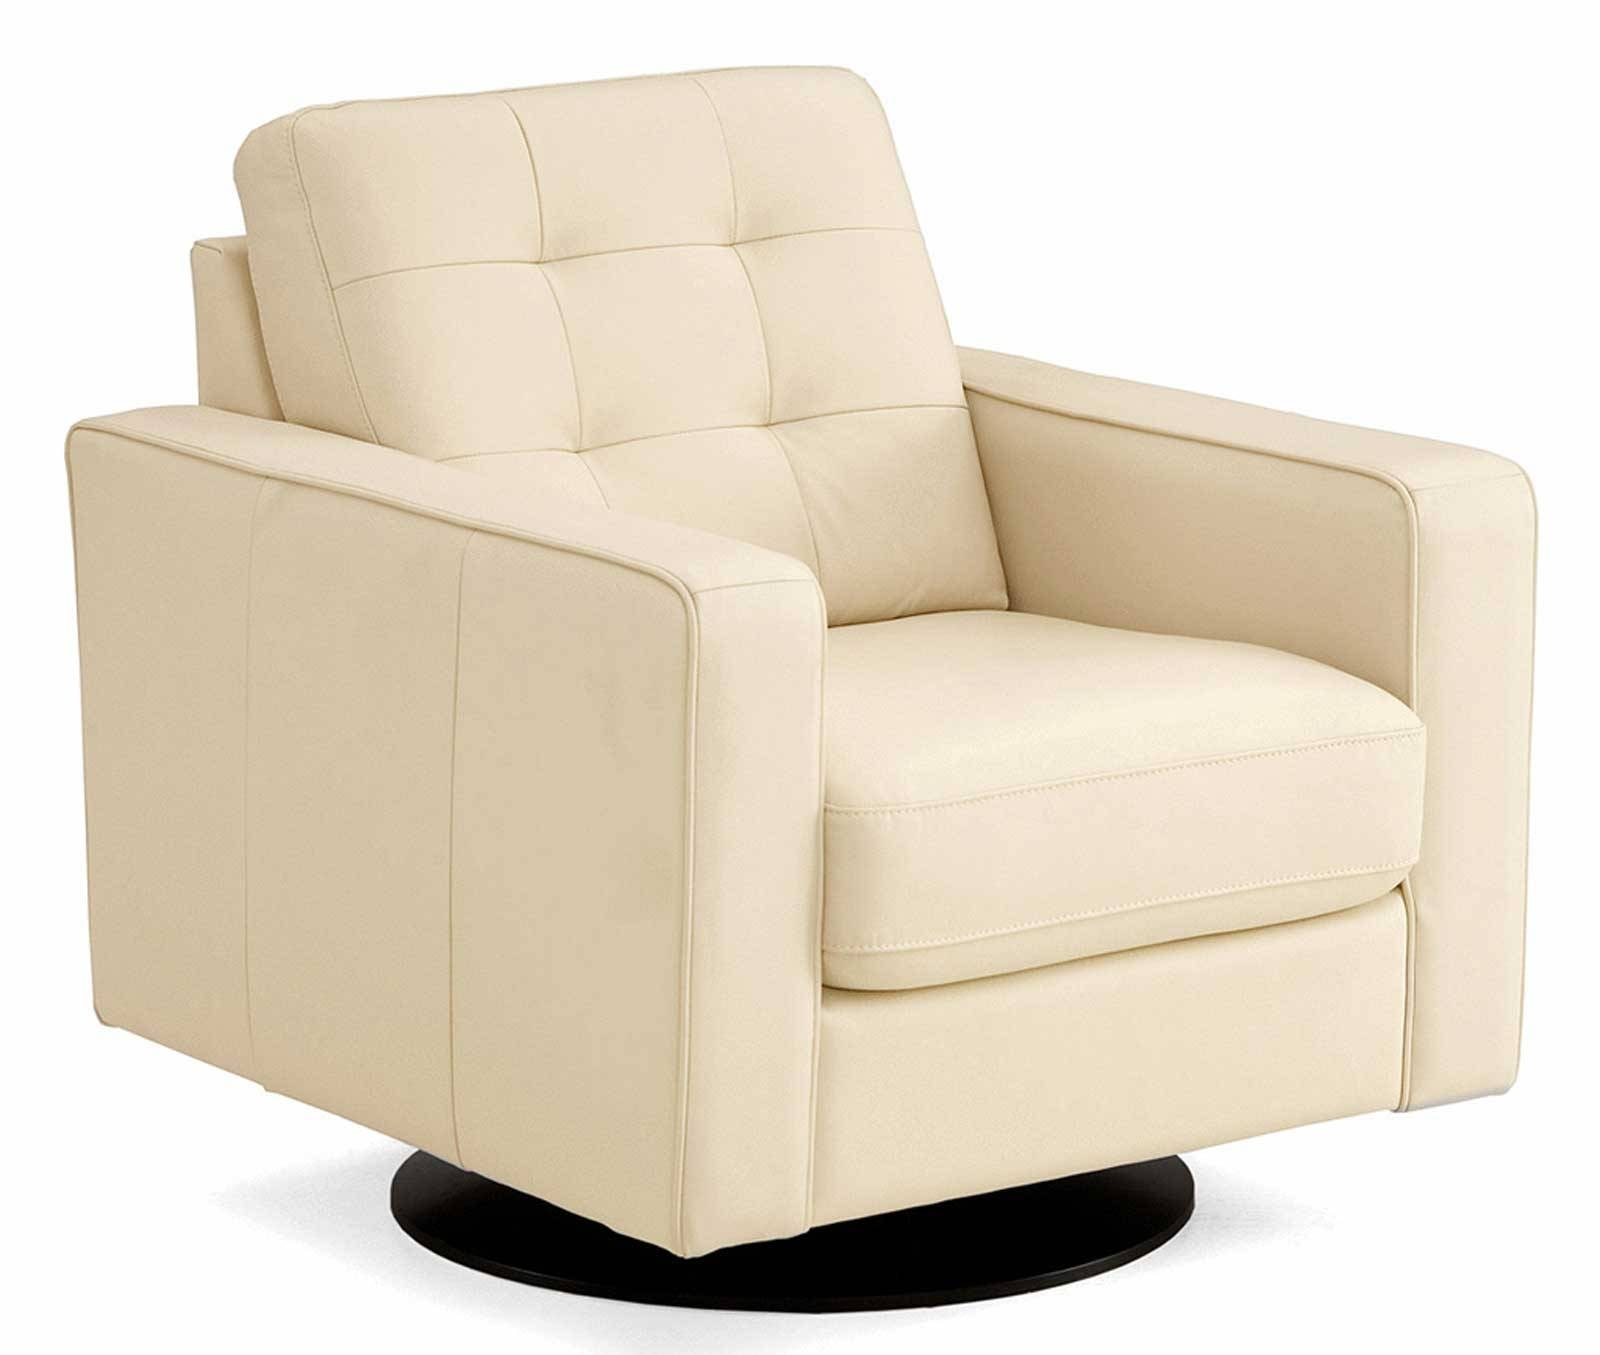 Splendid Design Inspiration Swivel Rocking Chairs For Living Room pertaining to Sofa Rocking Chairs (Image 28 of 30)